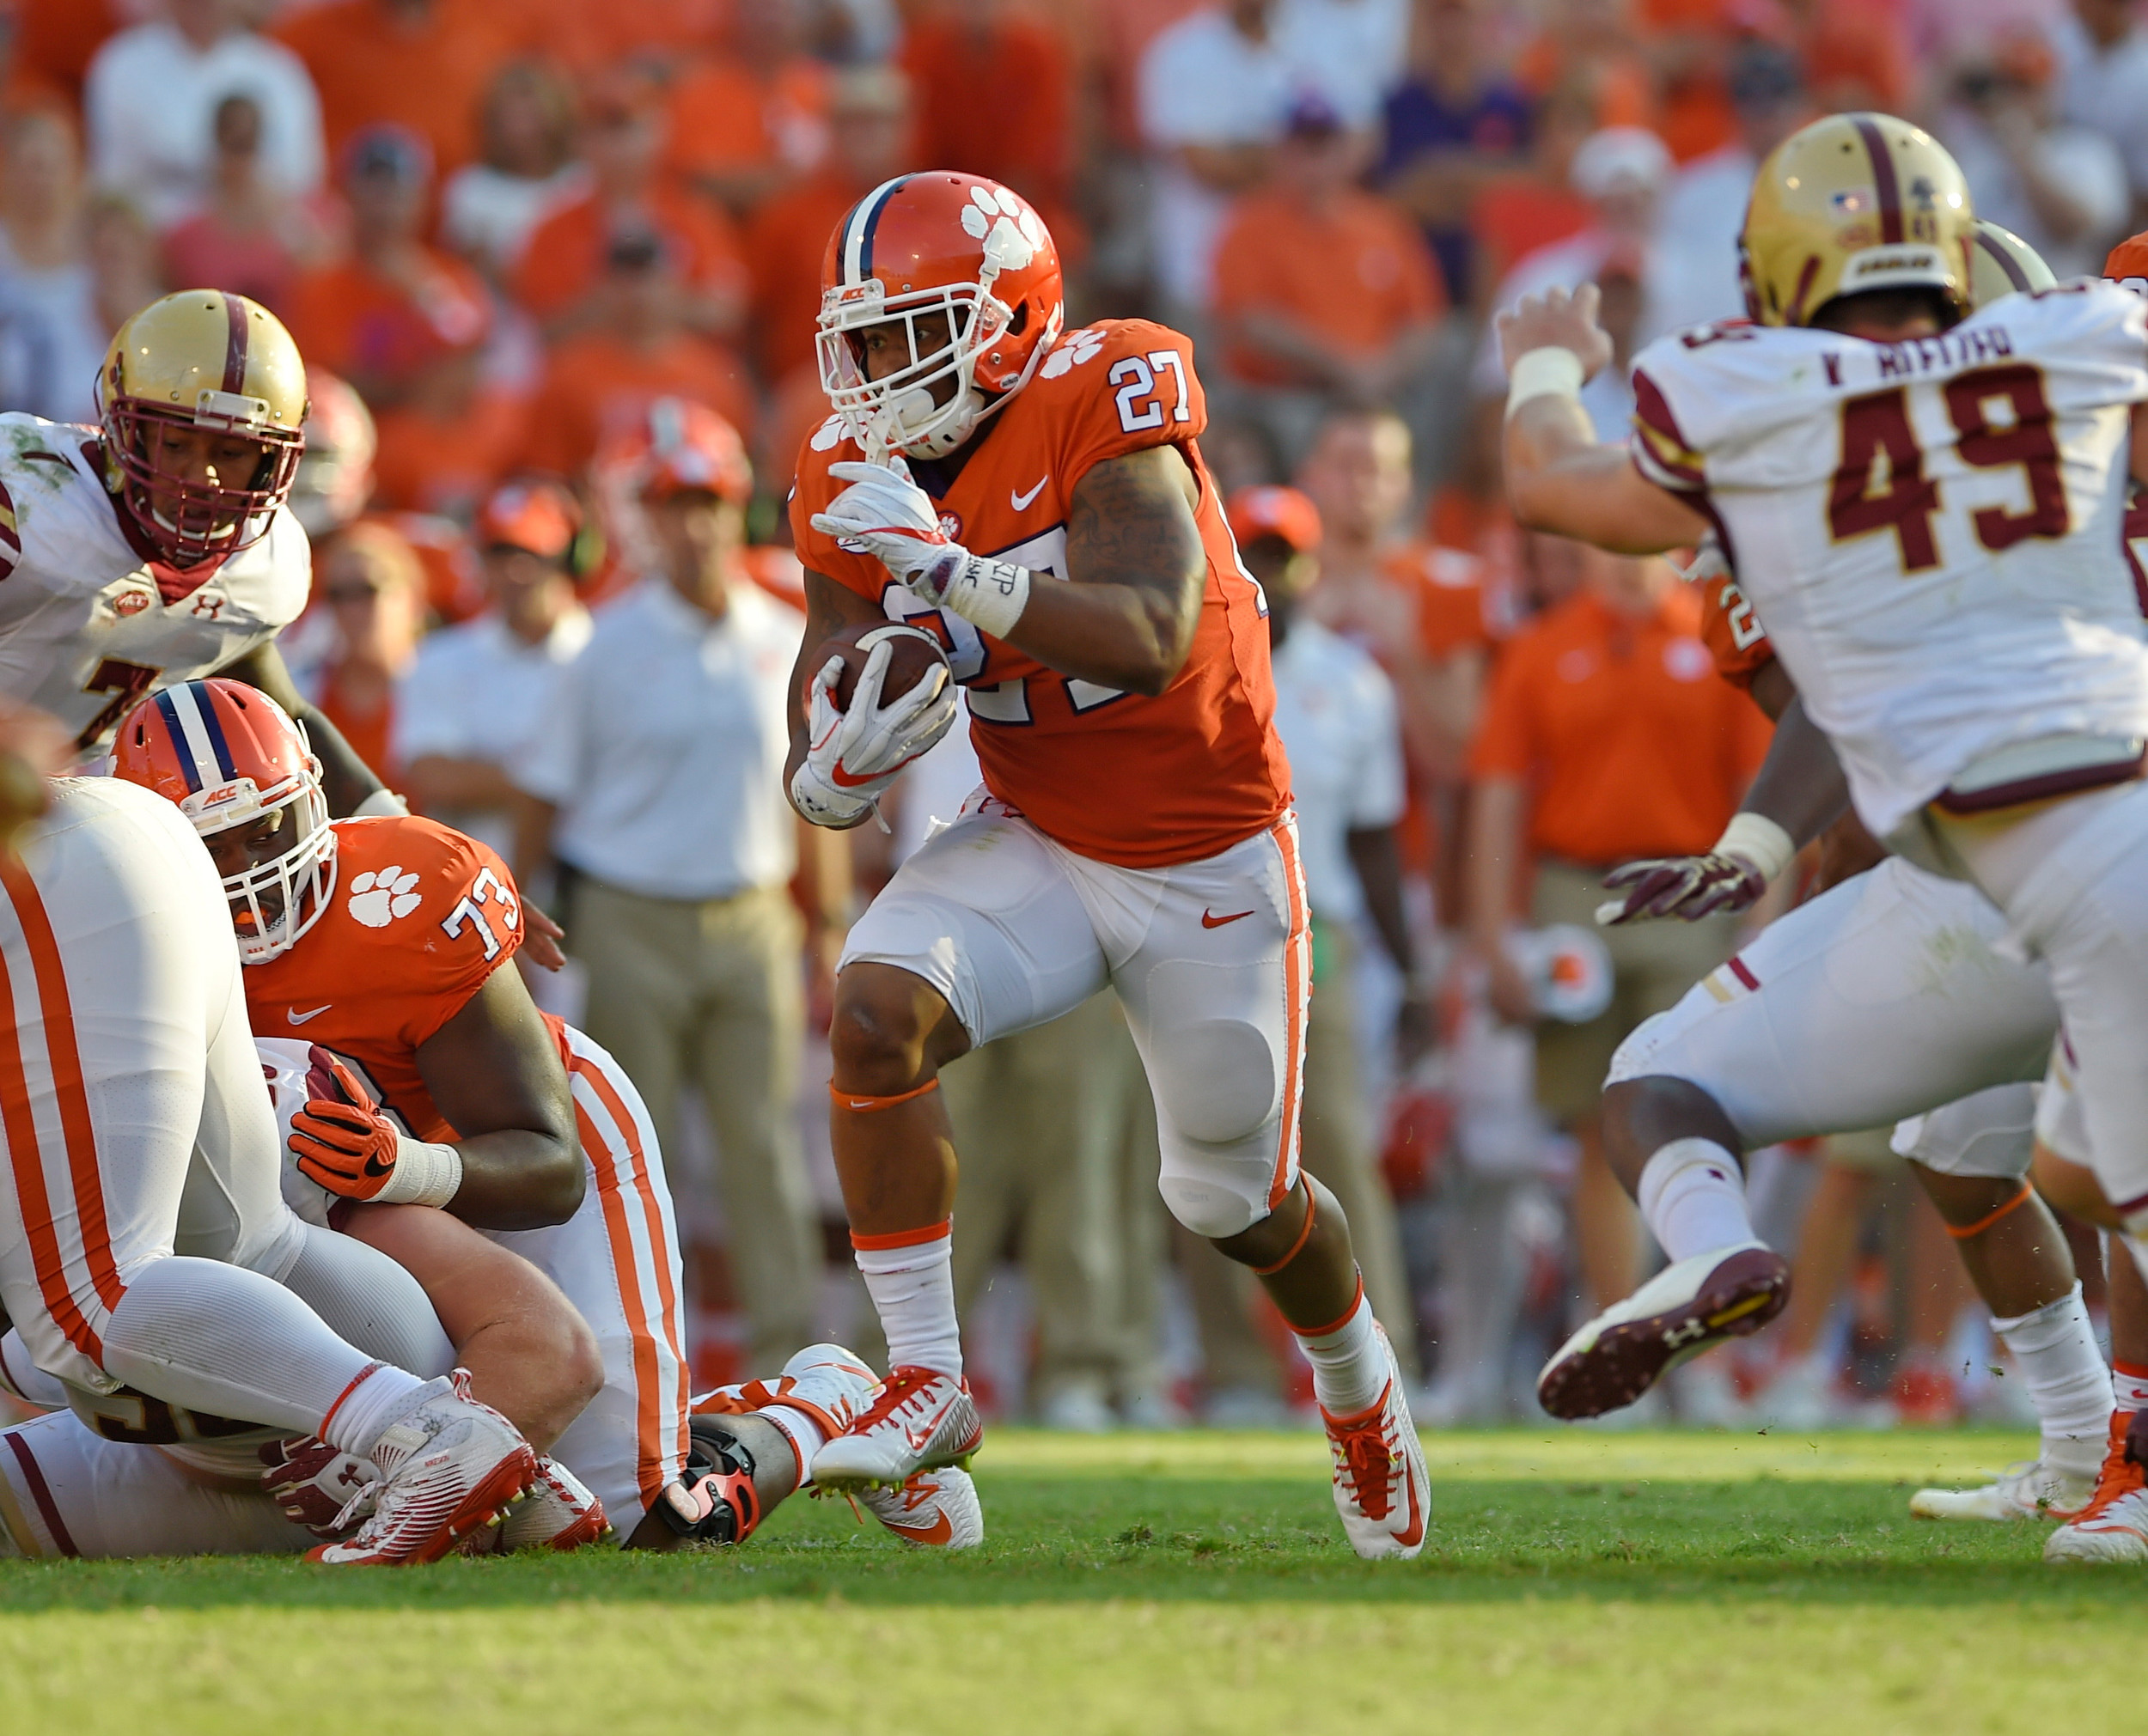 THE ASSOCIATED PRESSClemson running back C.J. Fuller (27) breaks out of the backfield for a first down during the Tigers' 34-7 victory over Boston College on Saturday in Clemson.